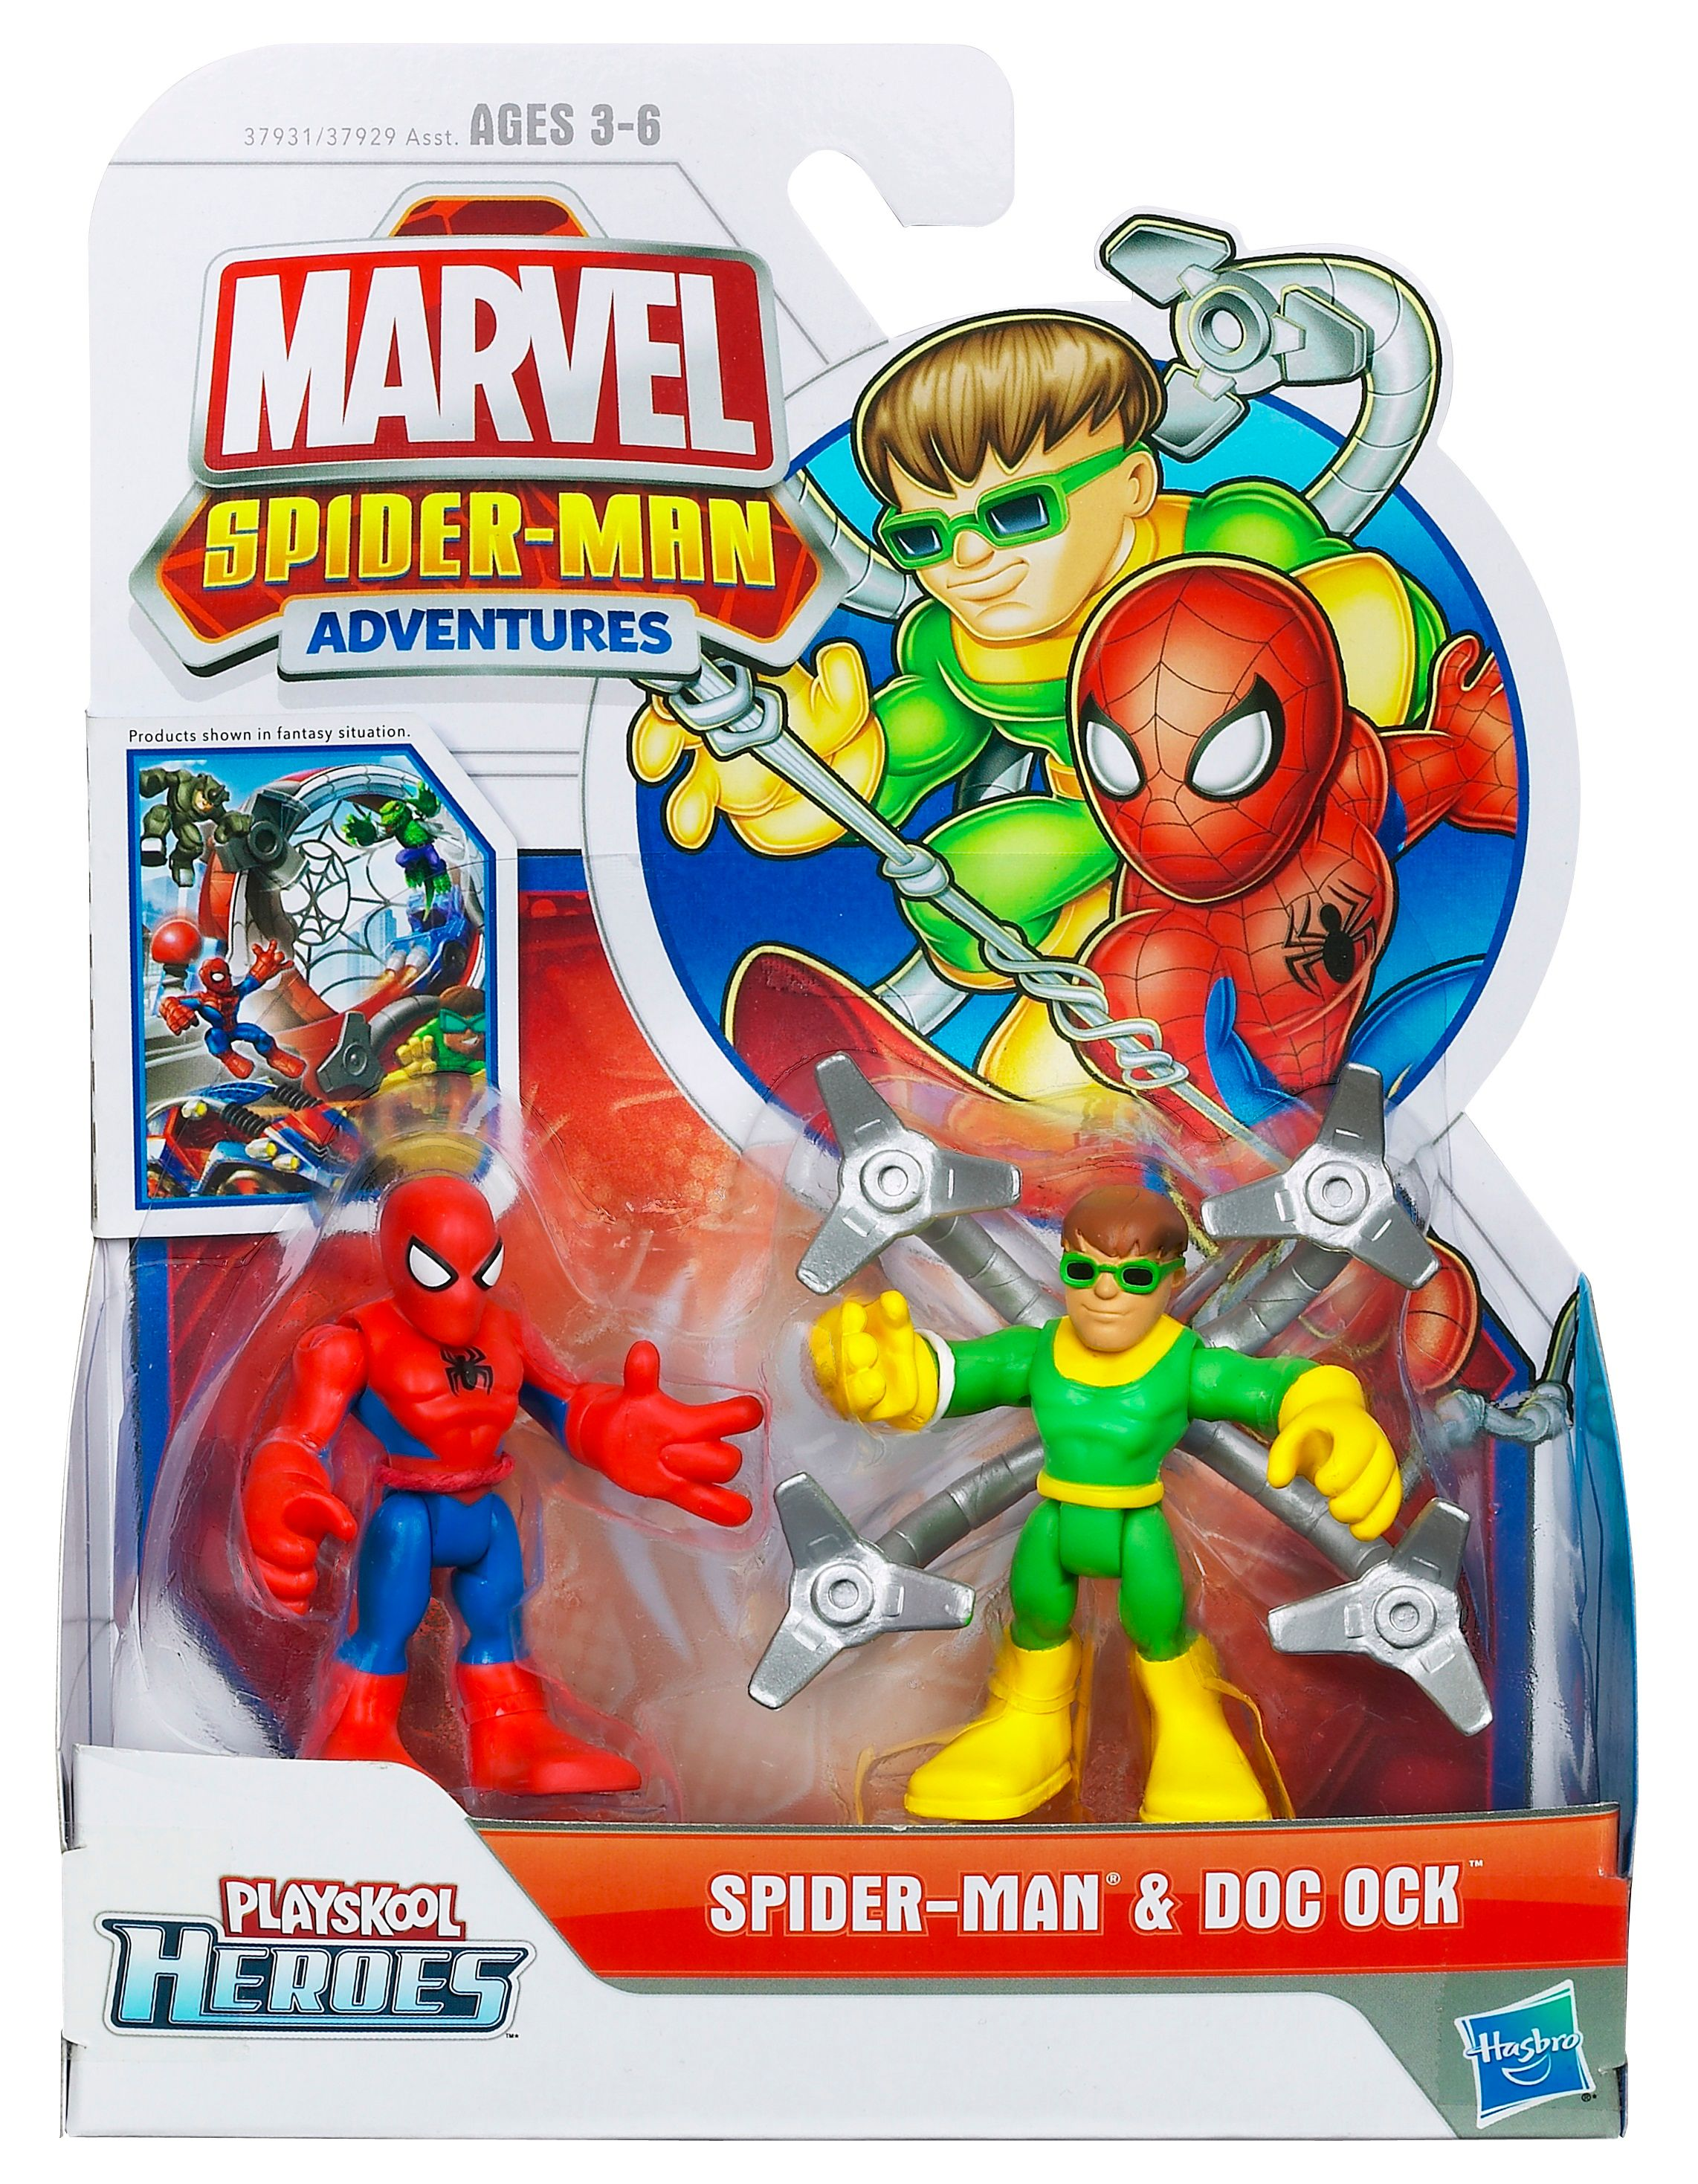 Spiderman & Doc Ock Playskool Heroes